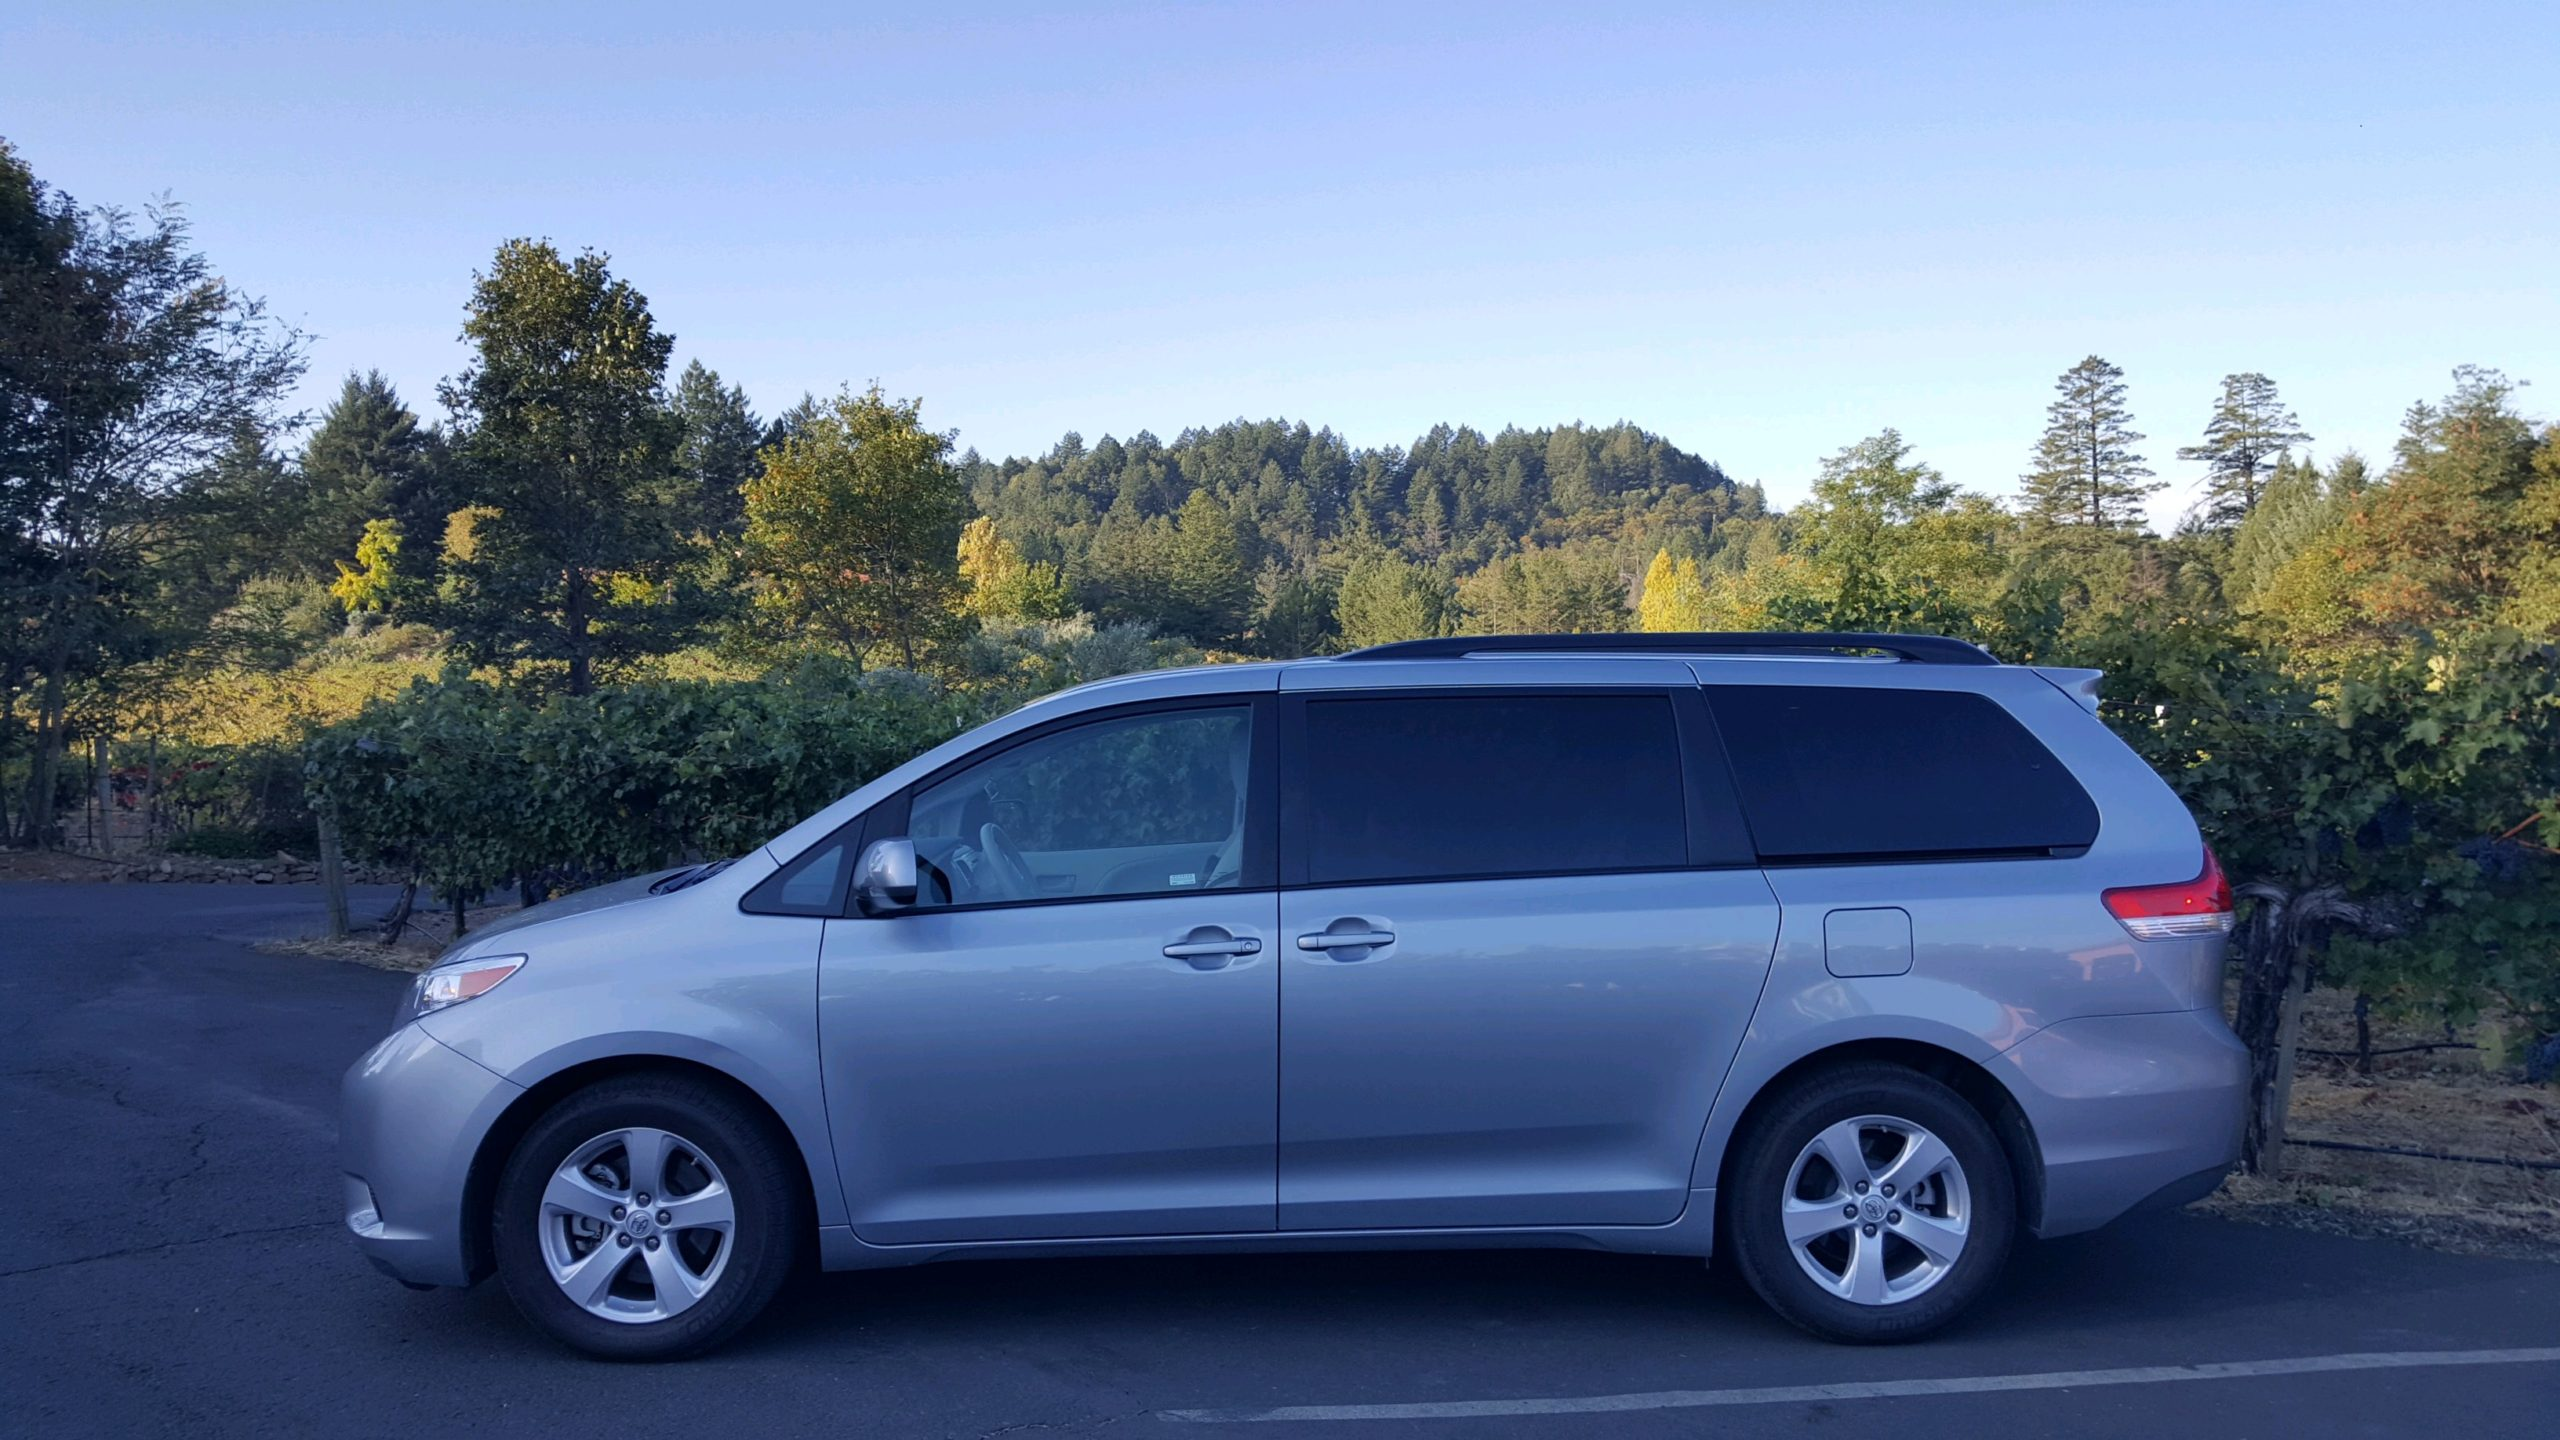 Our Toyota Sienna Van Seats 7 Guests- $60 Credit Car or $55 Cash